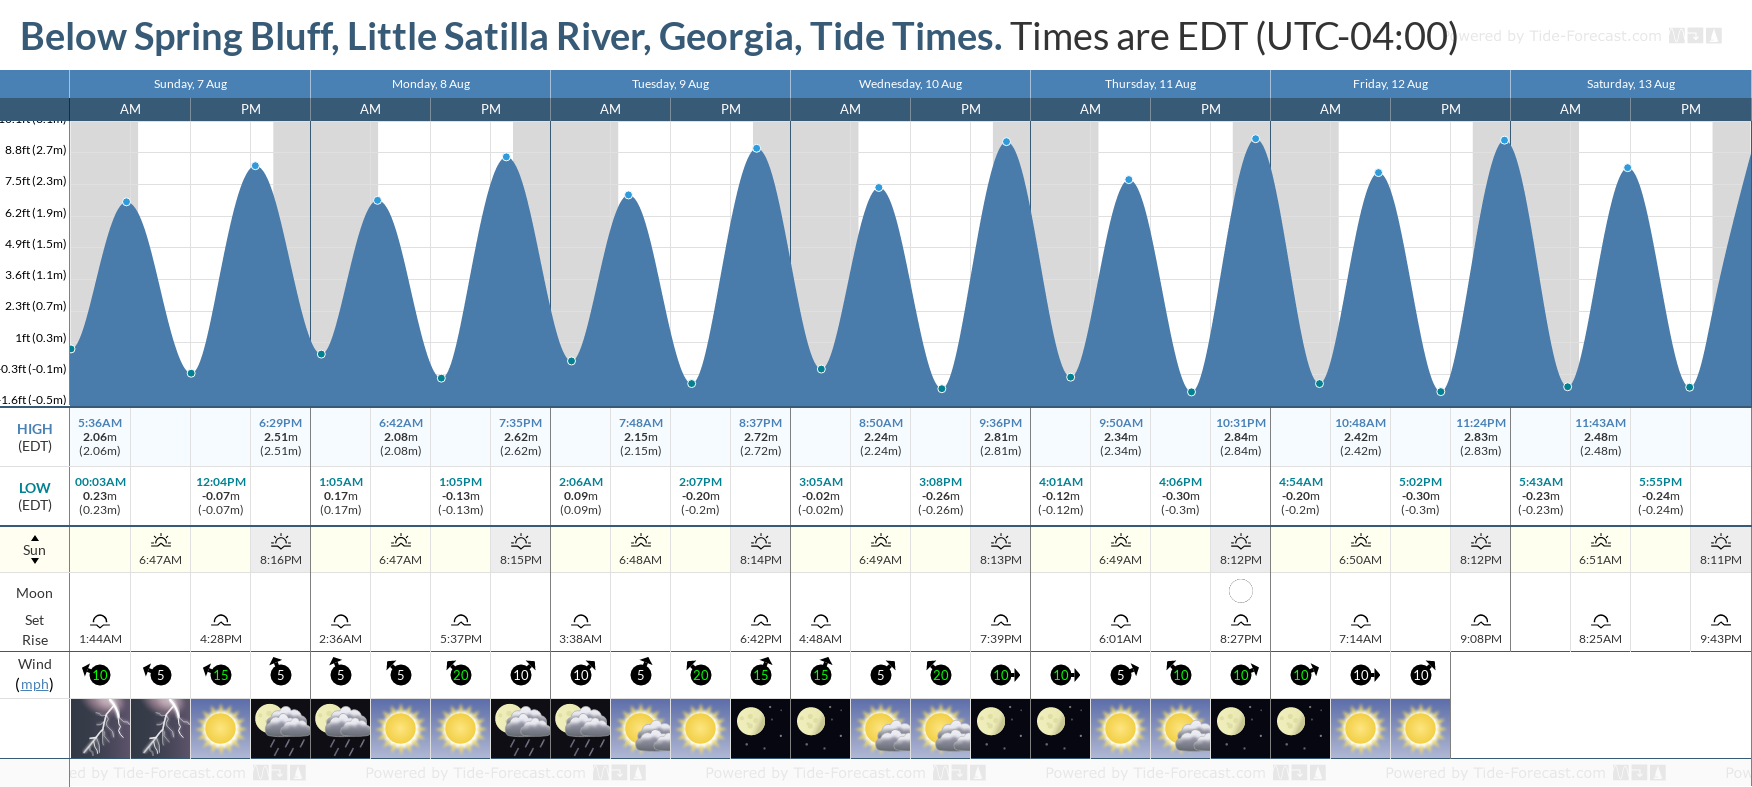 Below Spring Bluff, Little Satilla River, Georgia Tide Chart including high and low tide tide times for the next 7 days